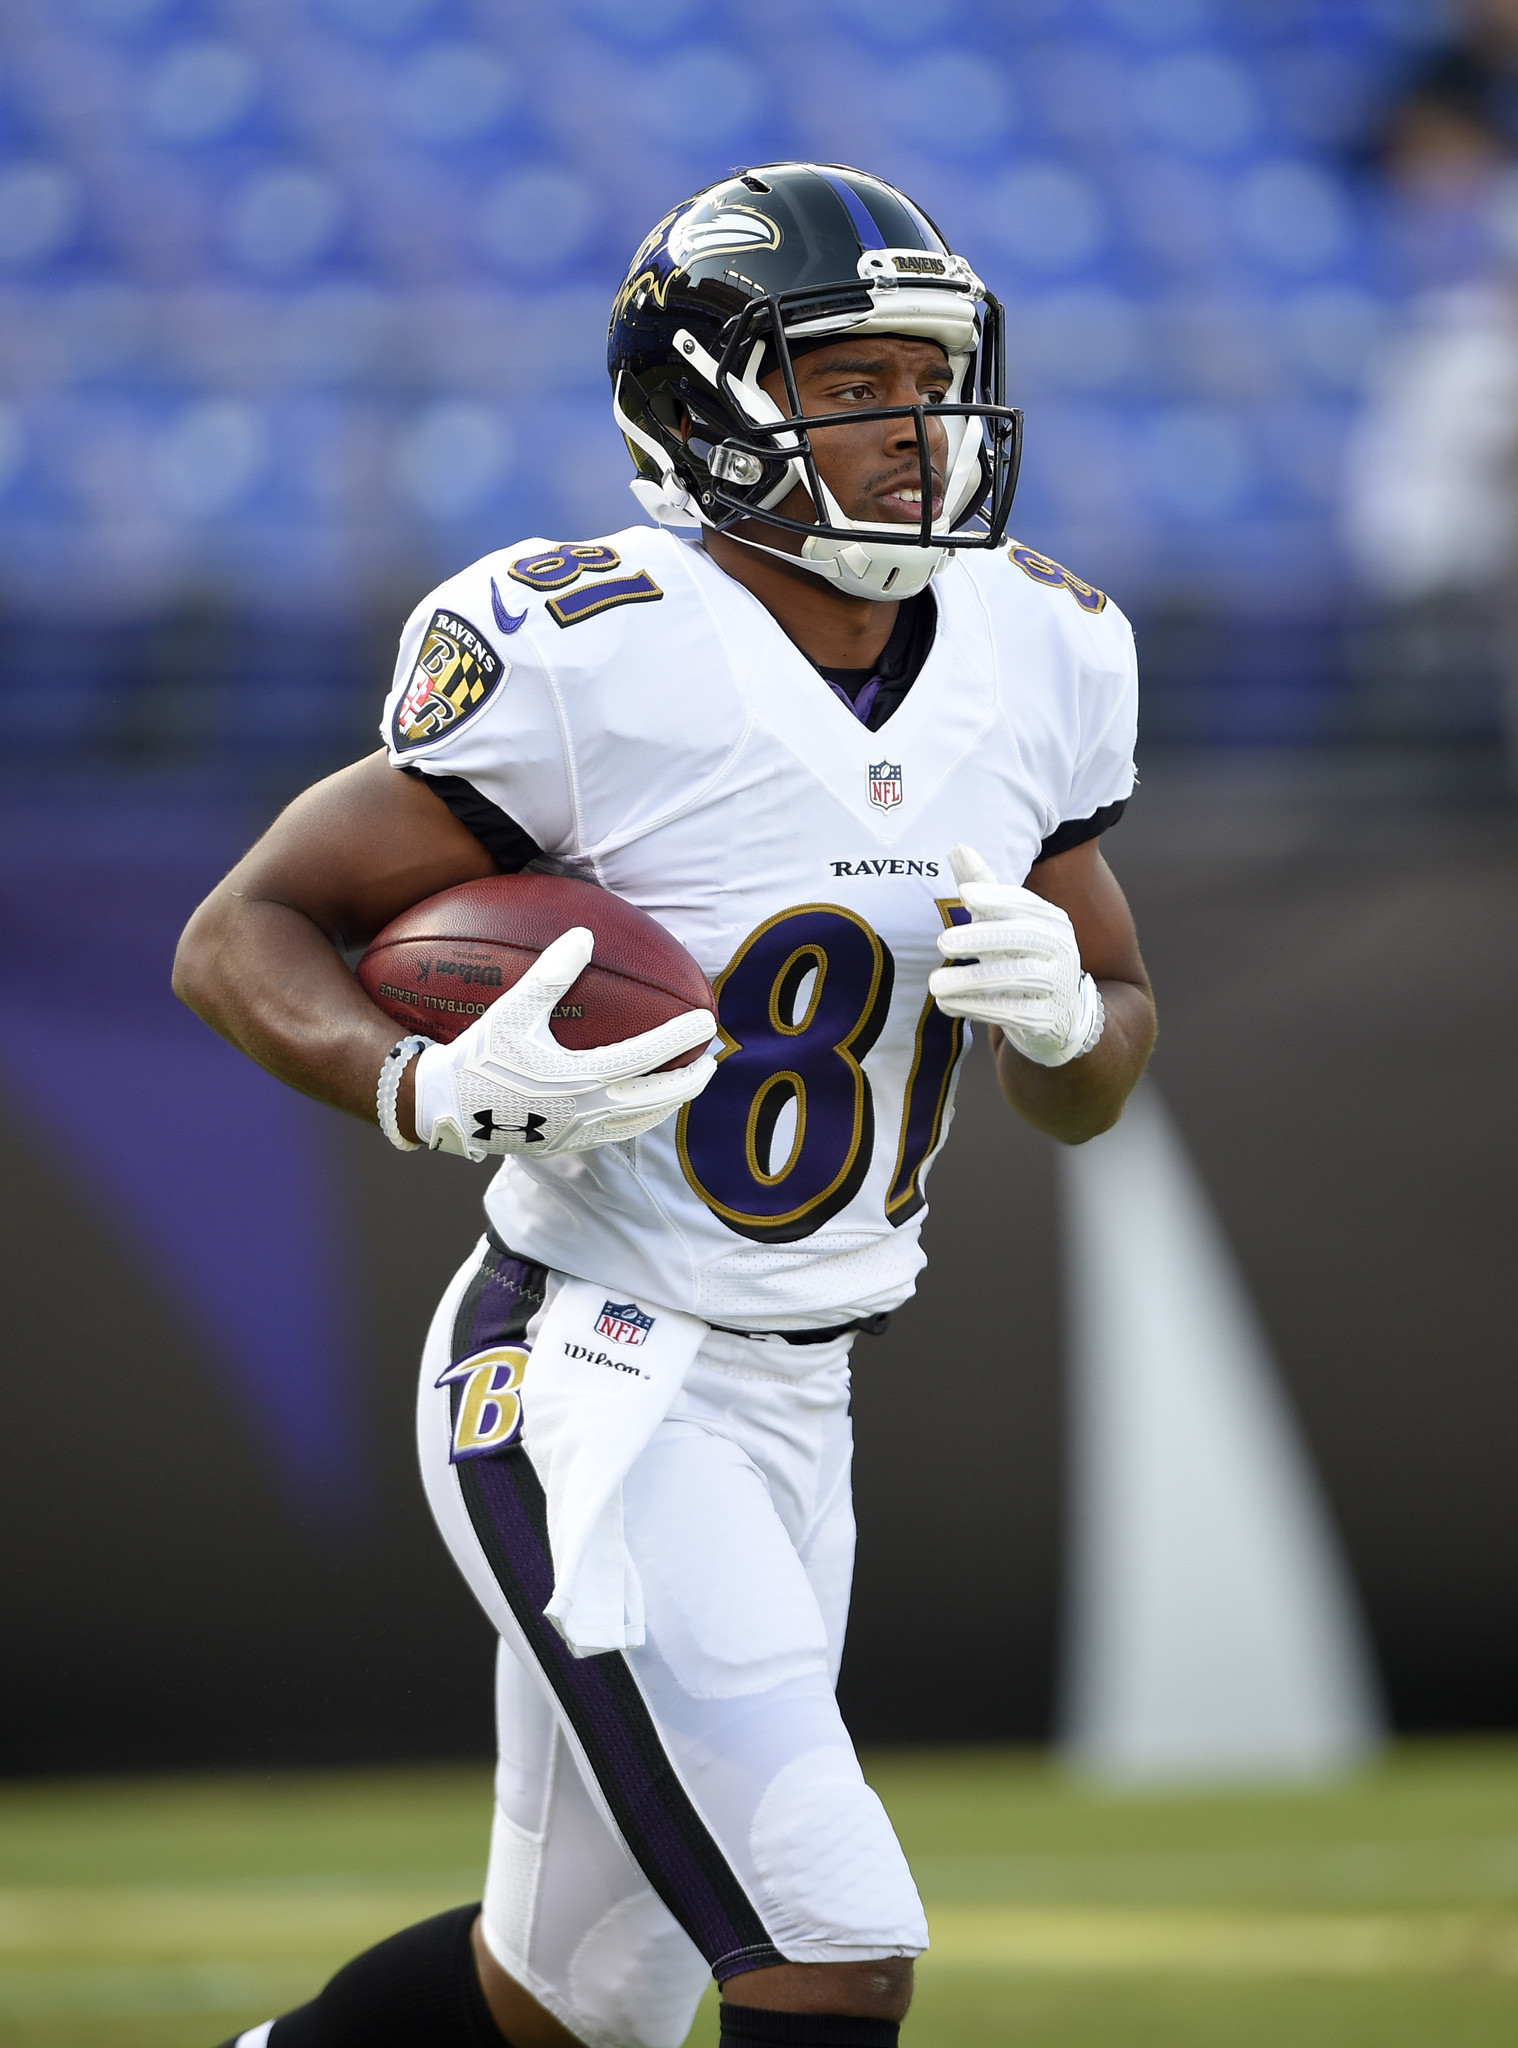 premium selection c1aa7 eb75a Keenan Reynolds clears waivers, returns to Ravens practice ...